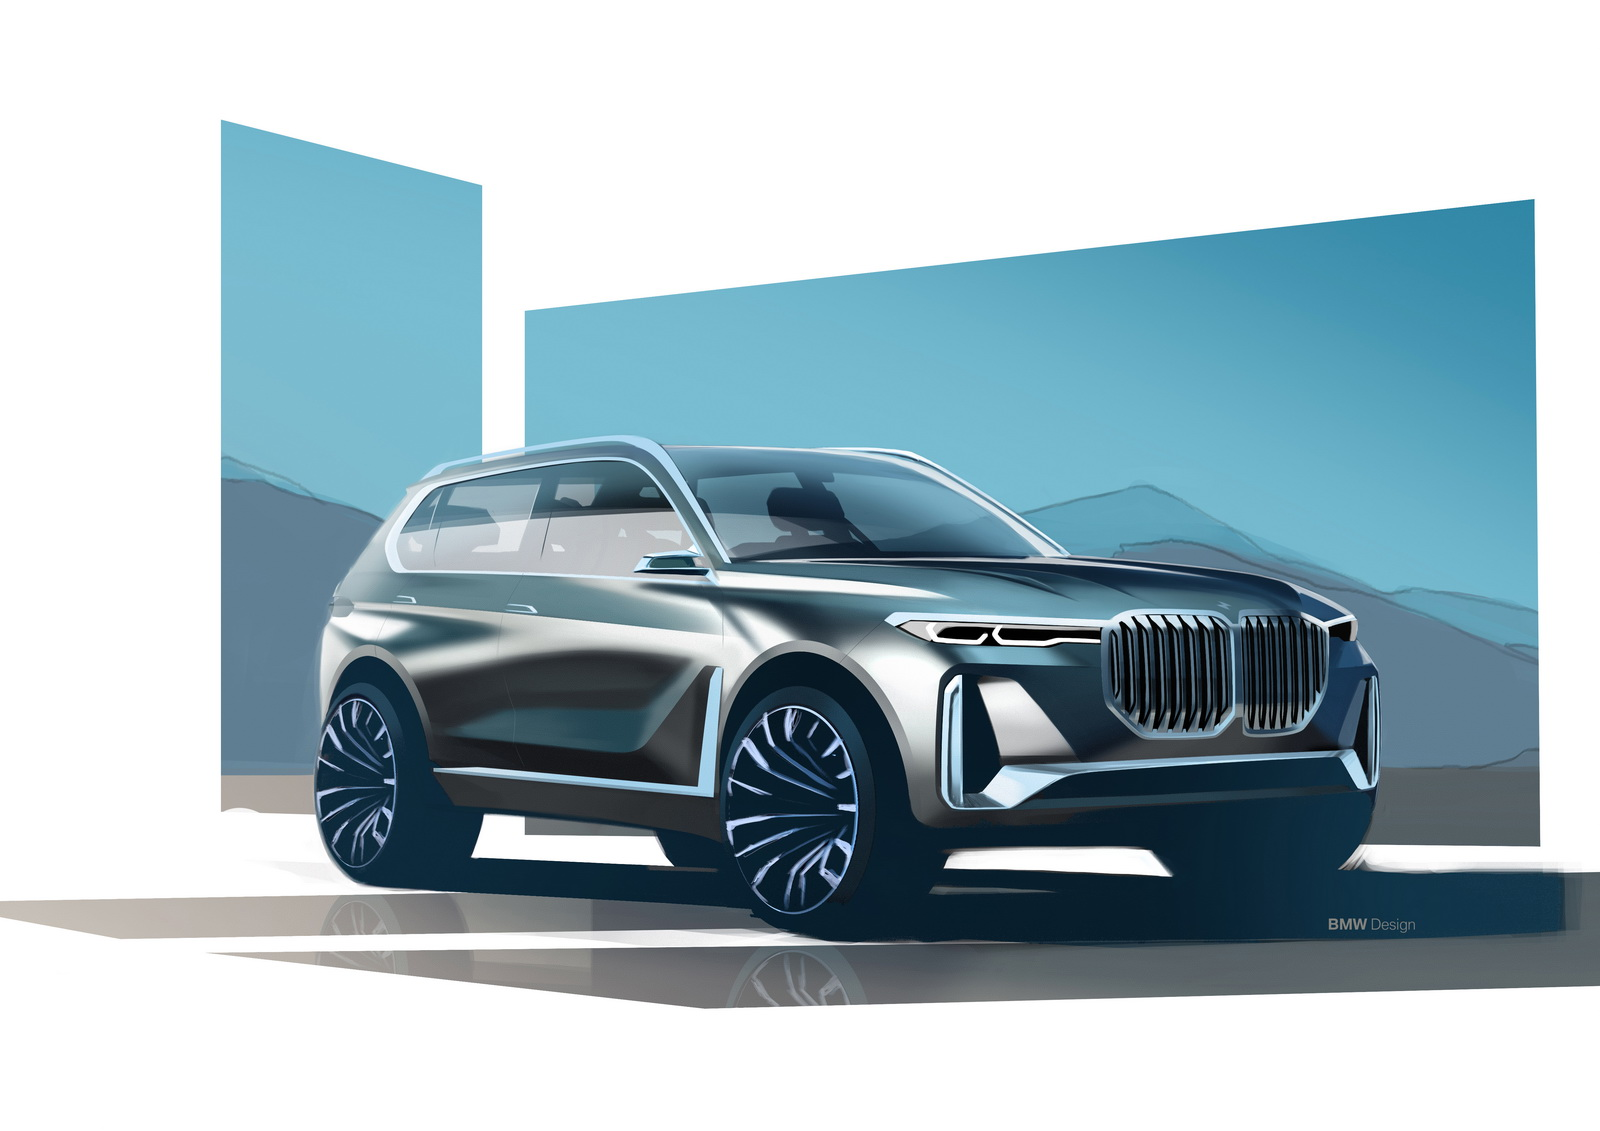 X8 Bmw >> A New Flagship Super-Luxury BMW X8 May Follow X7